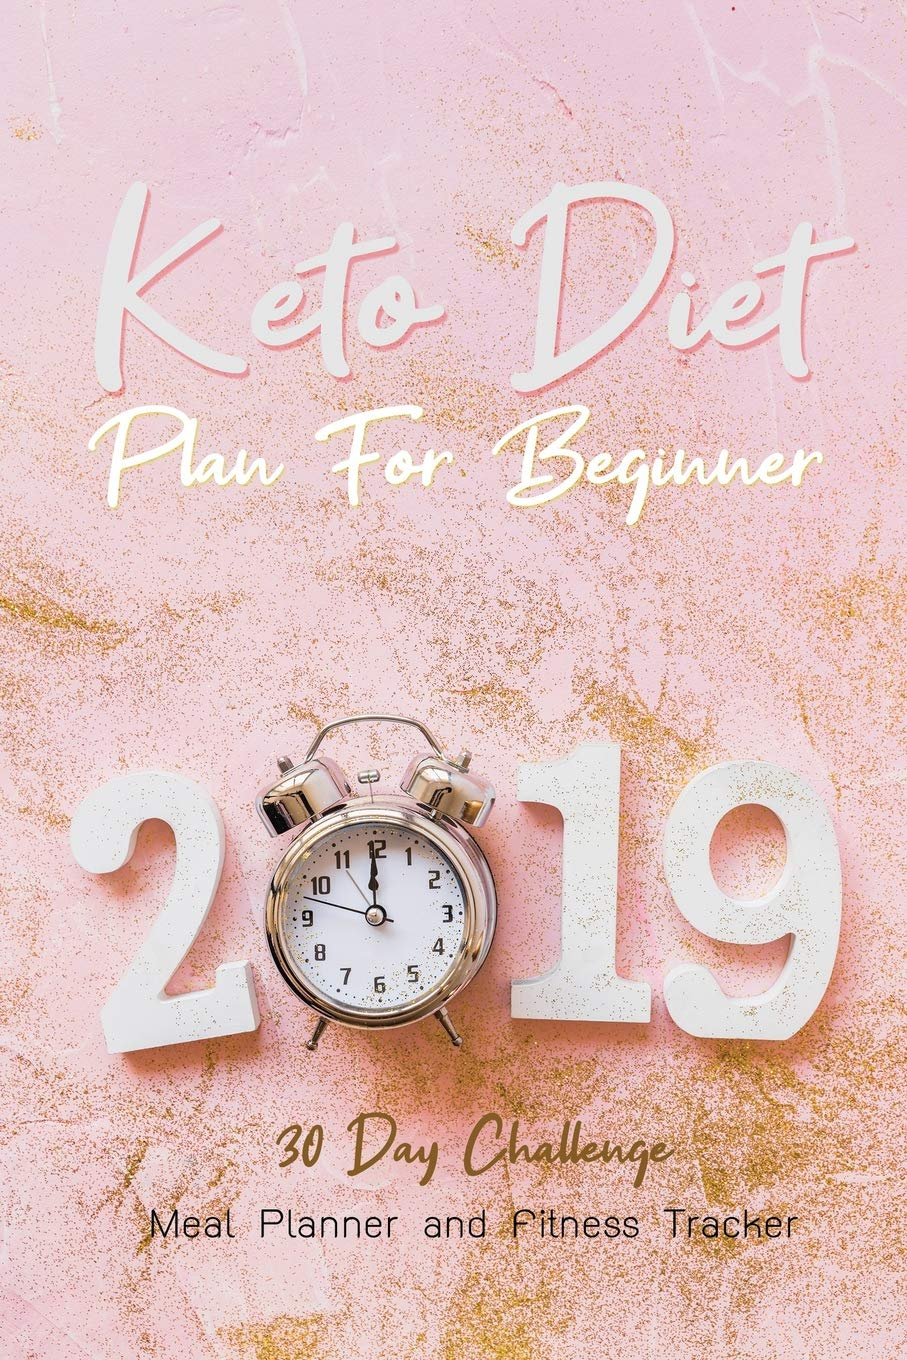 2019 Keto Diet Plan For Beginner 30 Day Challenge Meal Planner And Fitness Tracker Ketogenic Diet Weight Loss With Low Carb High Fat Workout Log Diary Exercise Planner Pink Journal Shatley